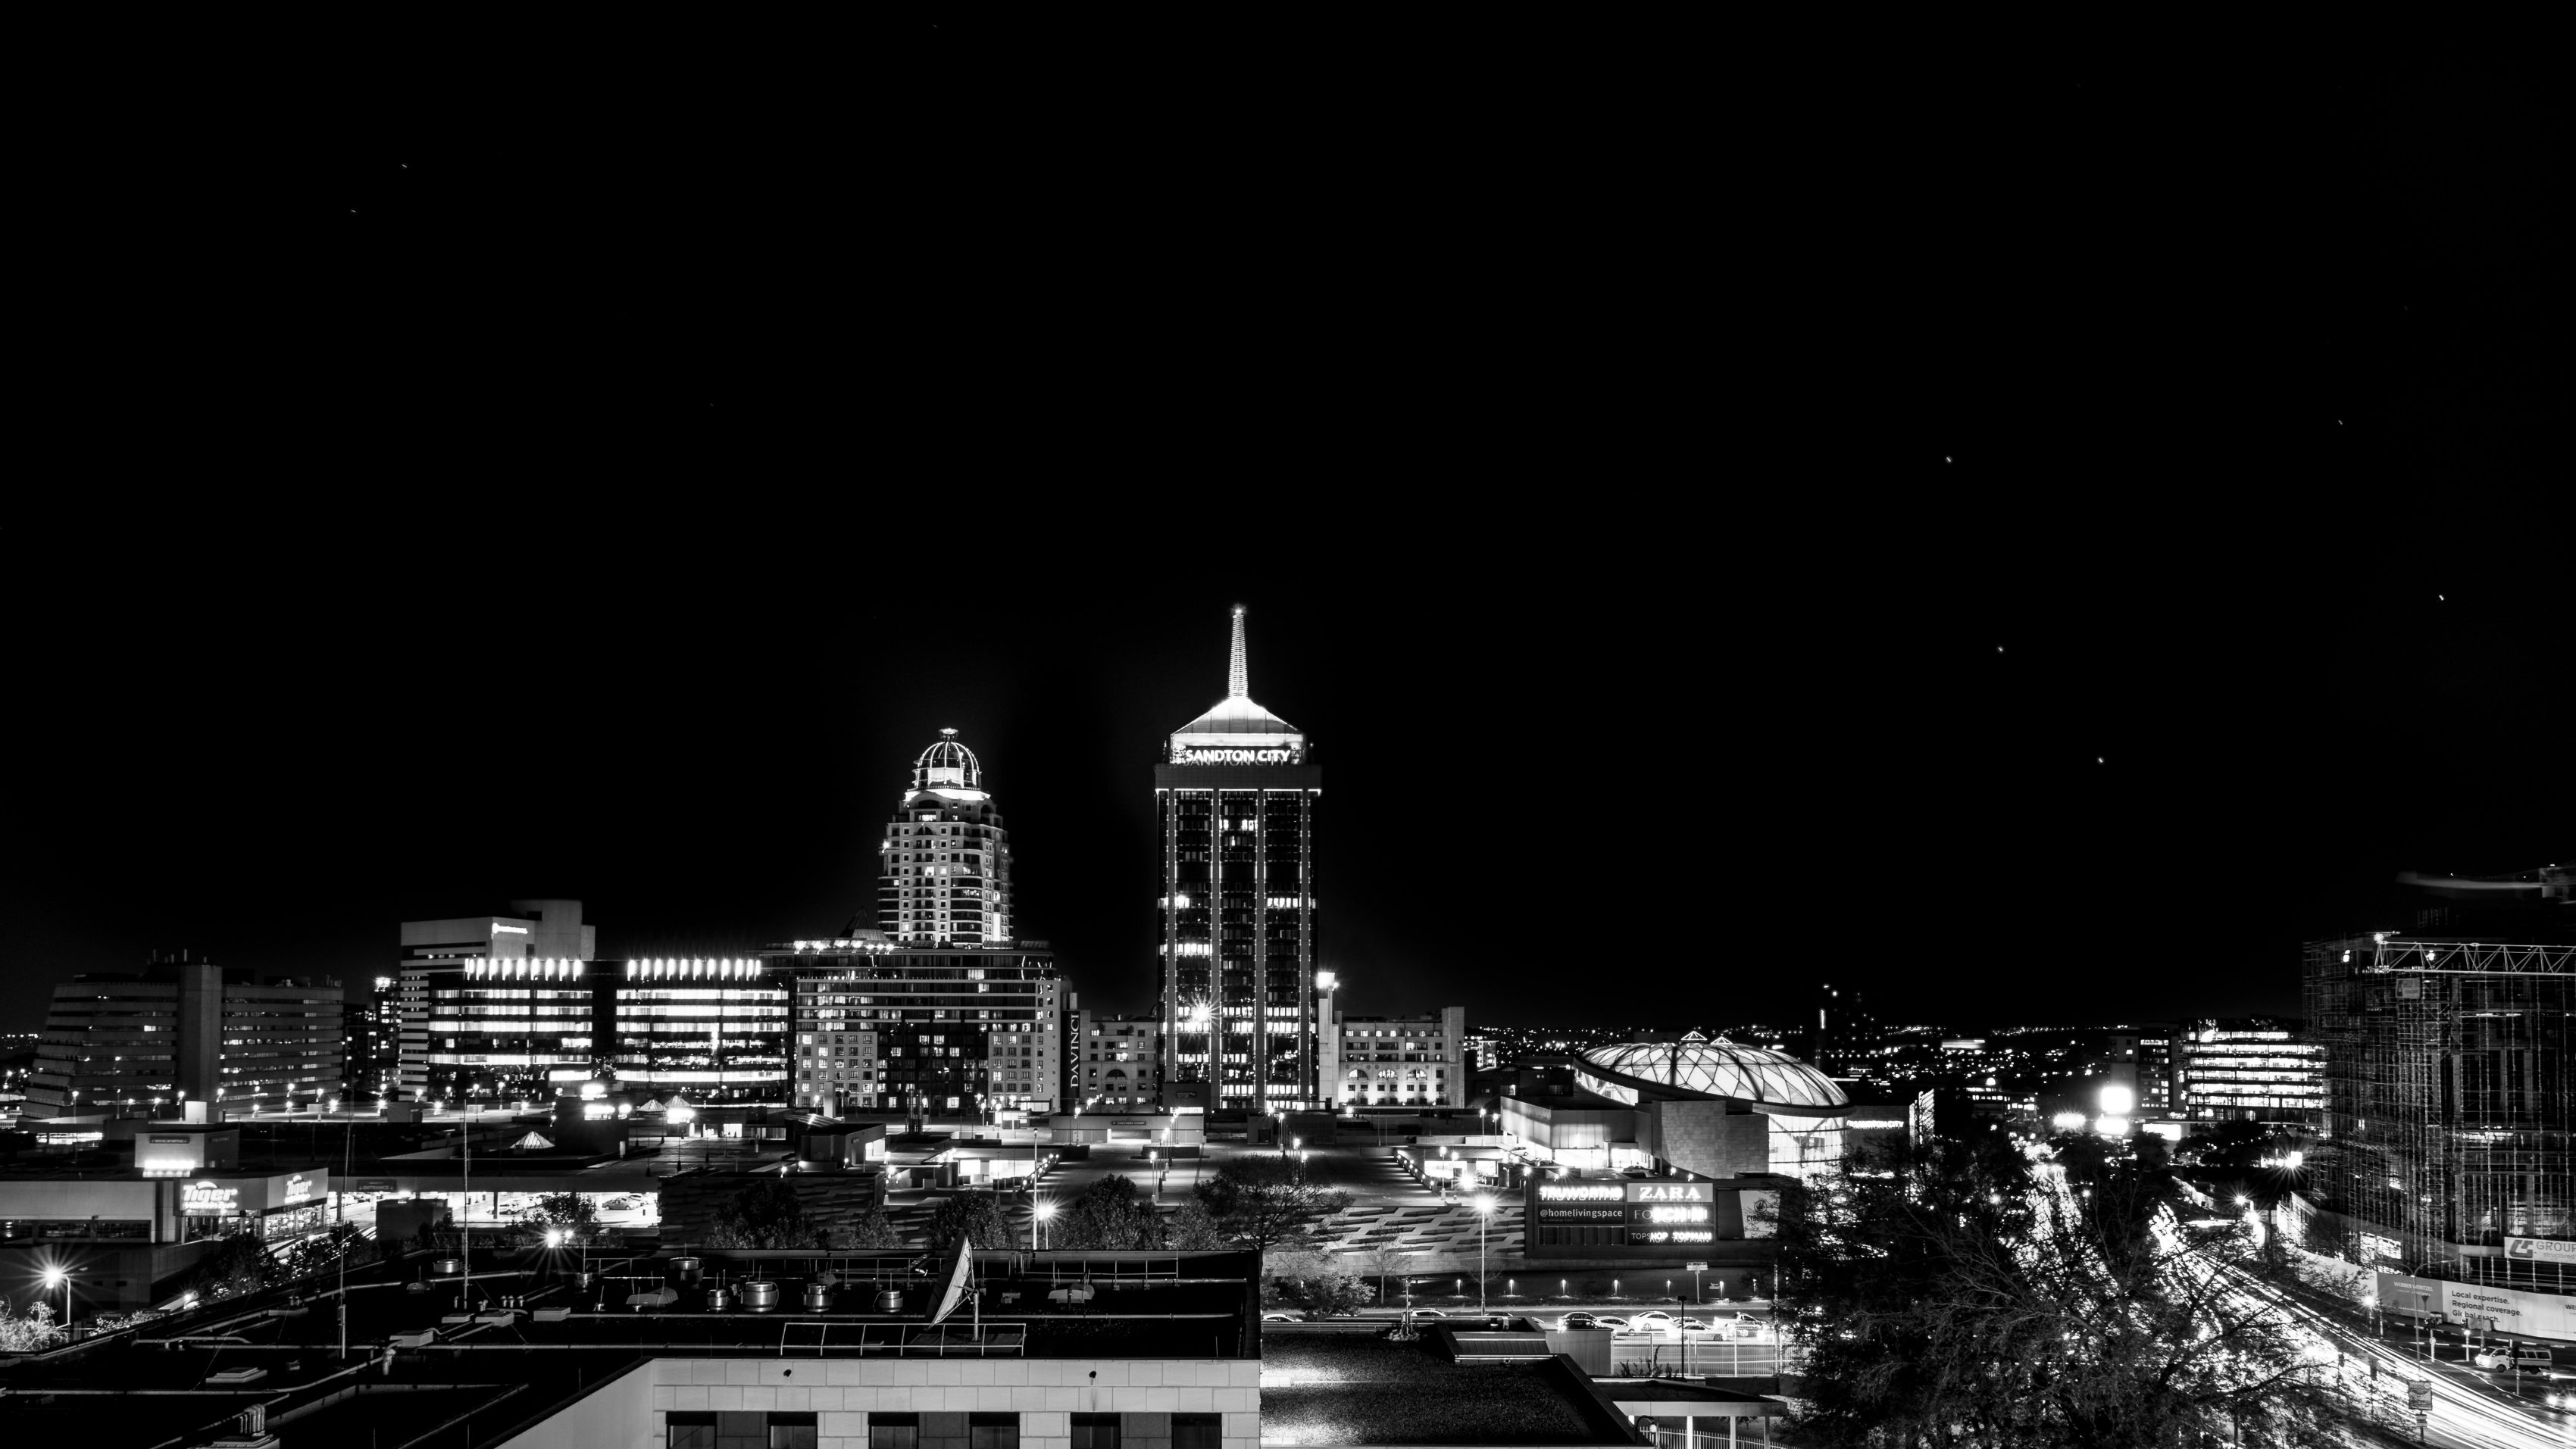 Sandton_City_at_night